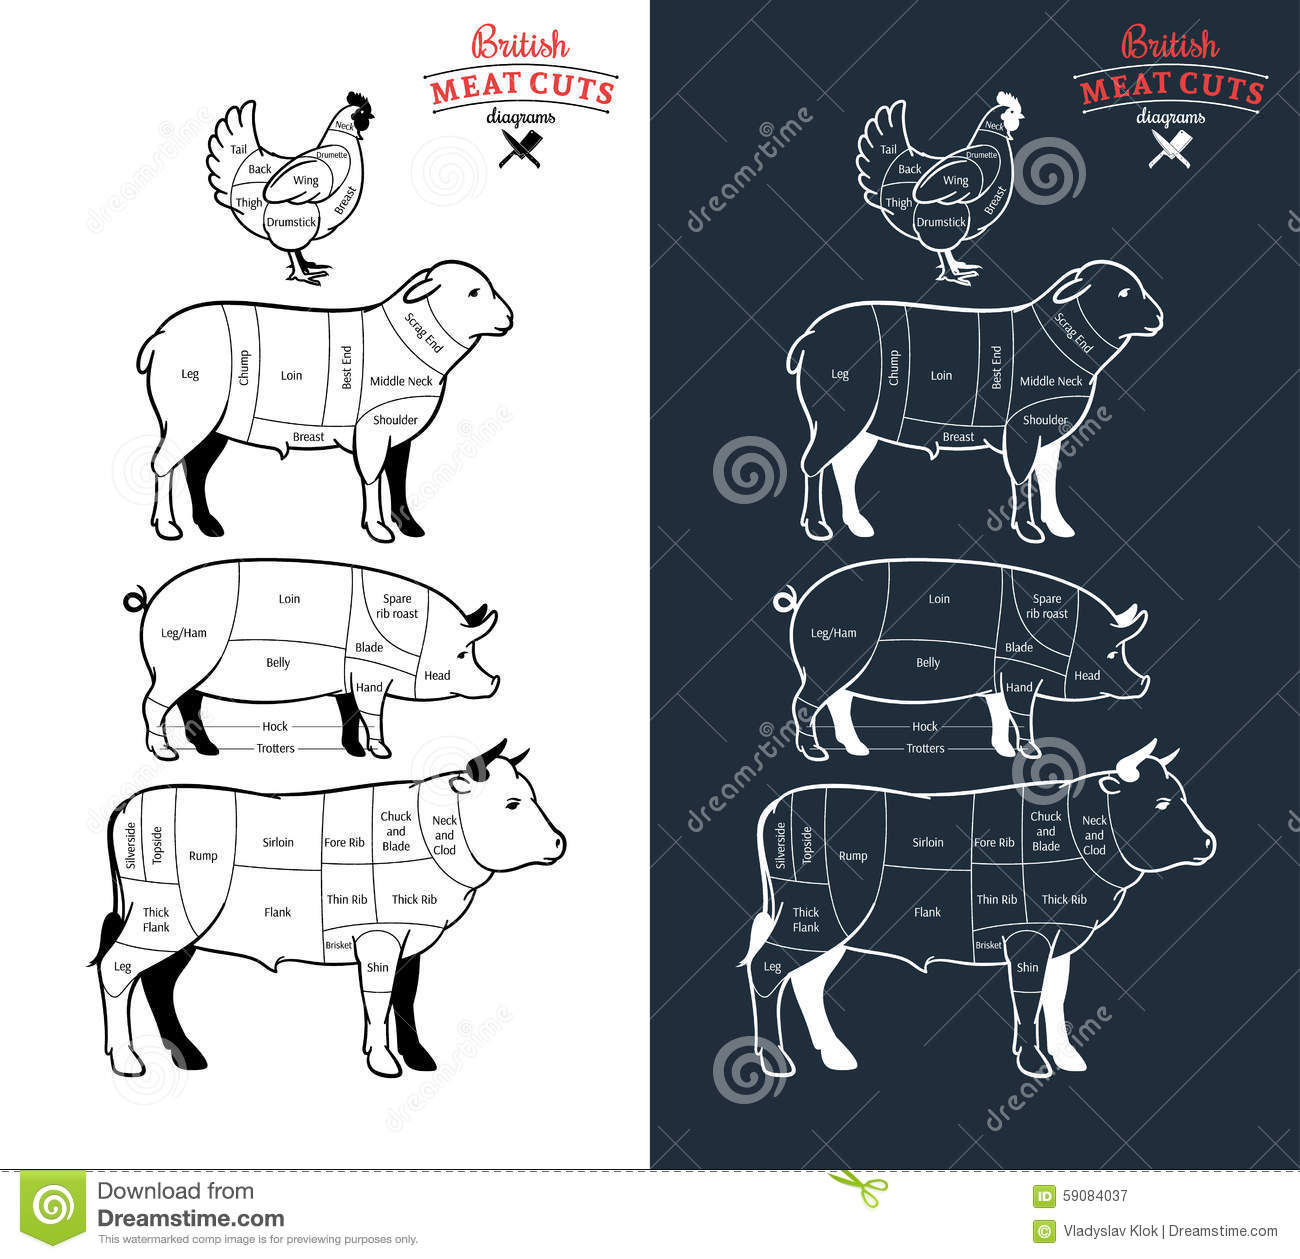 pork butcher cuts diagram wiring for rv battery isolator british meat diagrams stock vector illustration of beef lamb and chicken